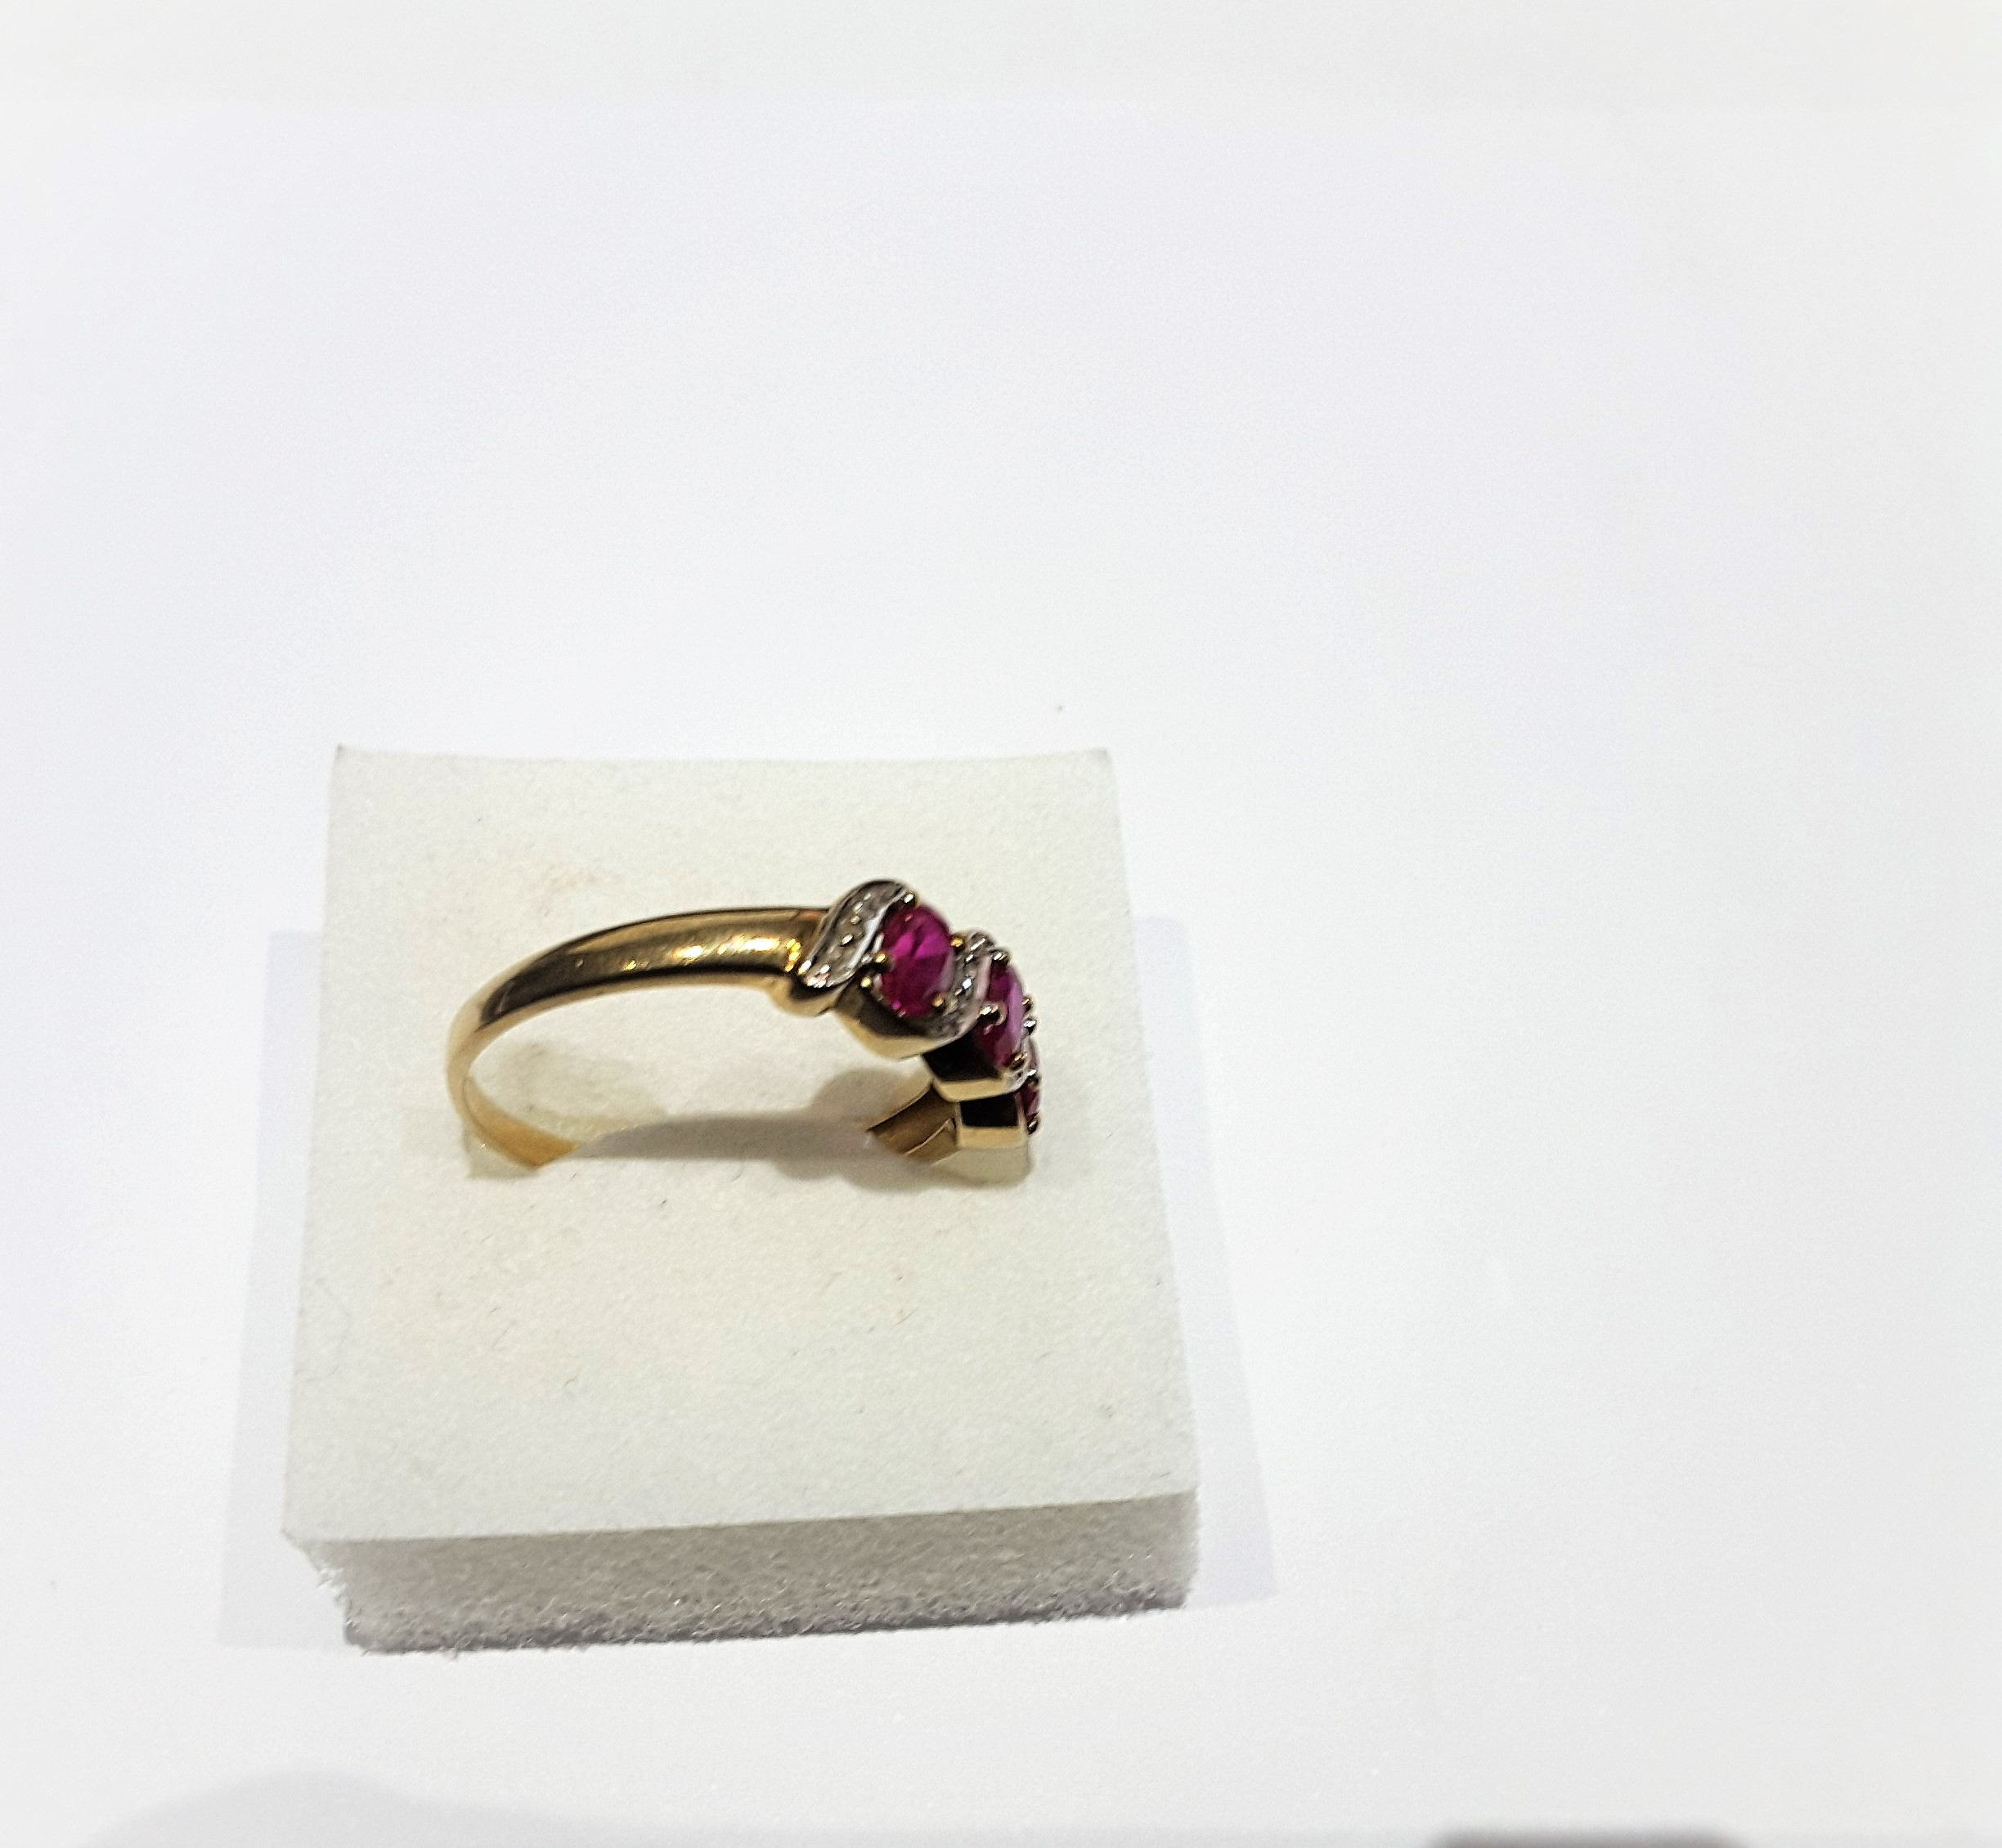 9Ct Gold Ruby And Diamond 3 Stone Ring - Image 2 of 5